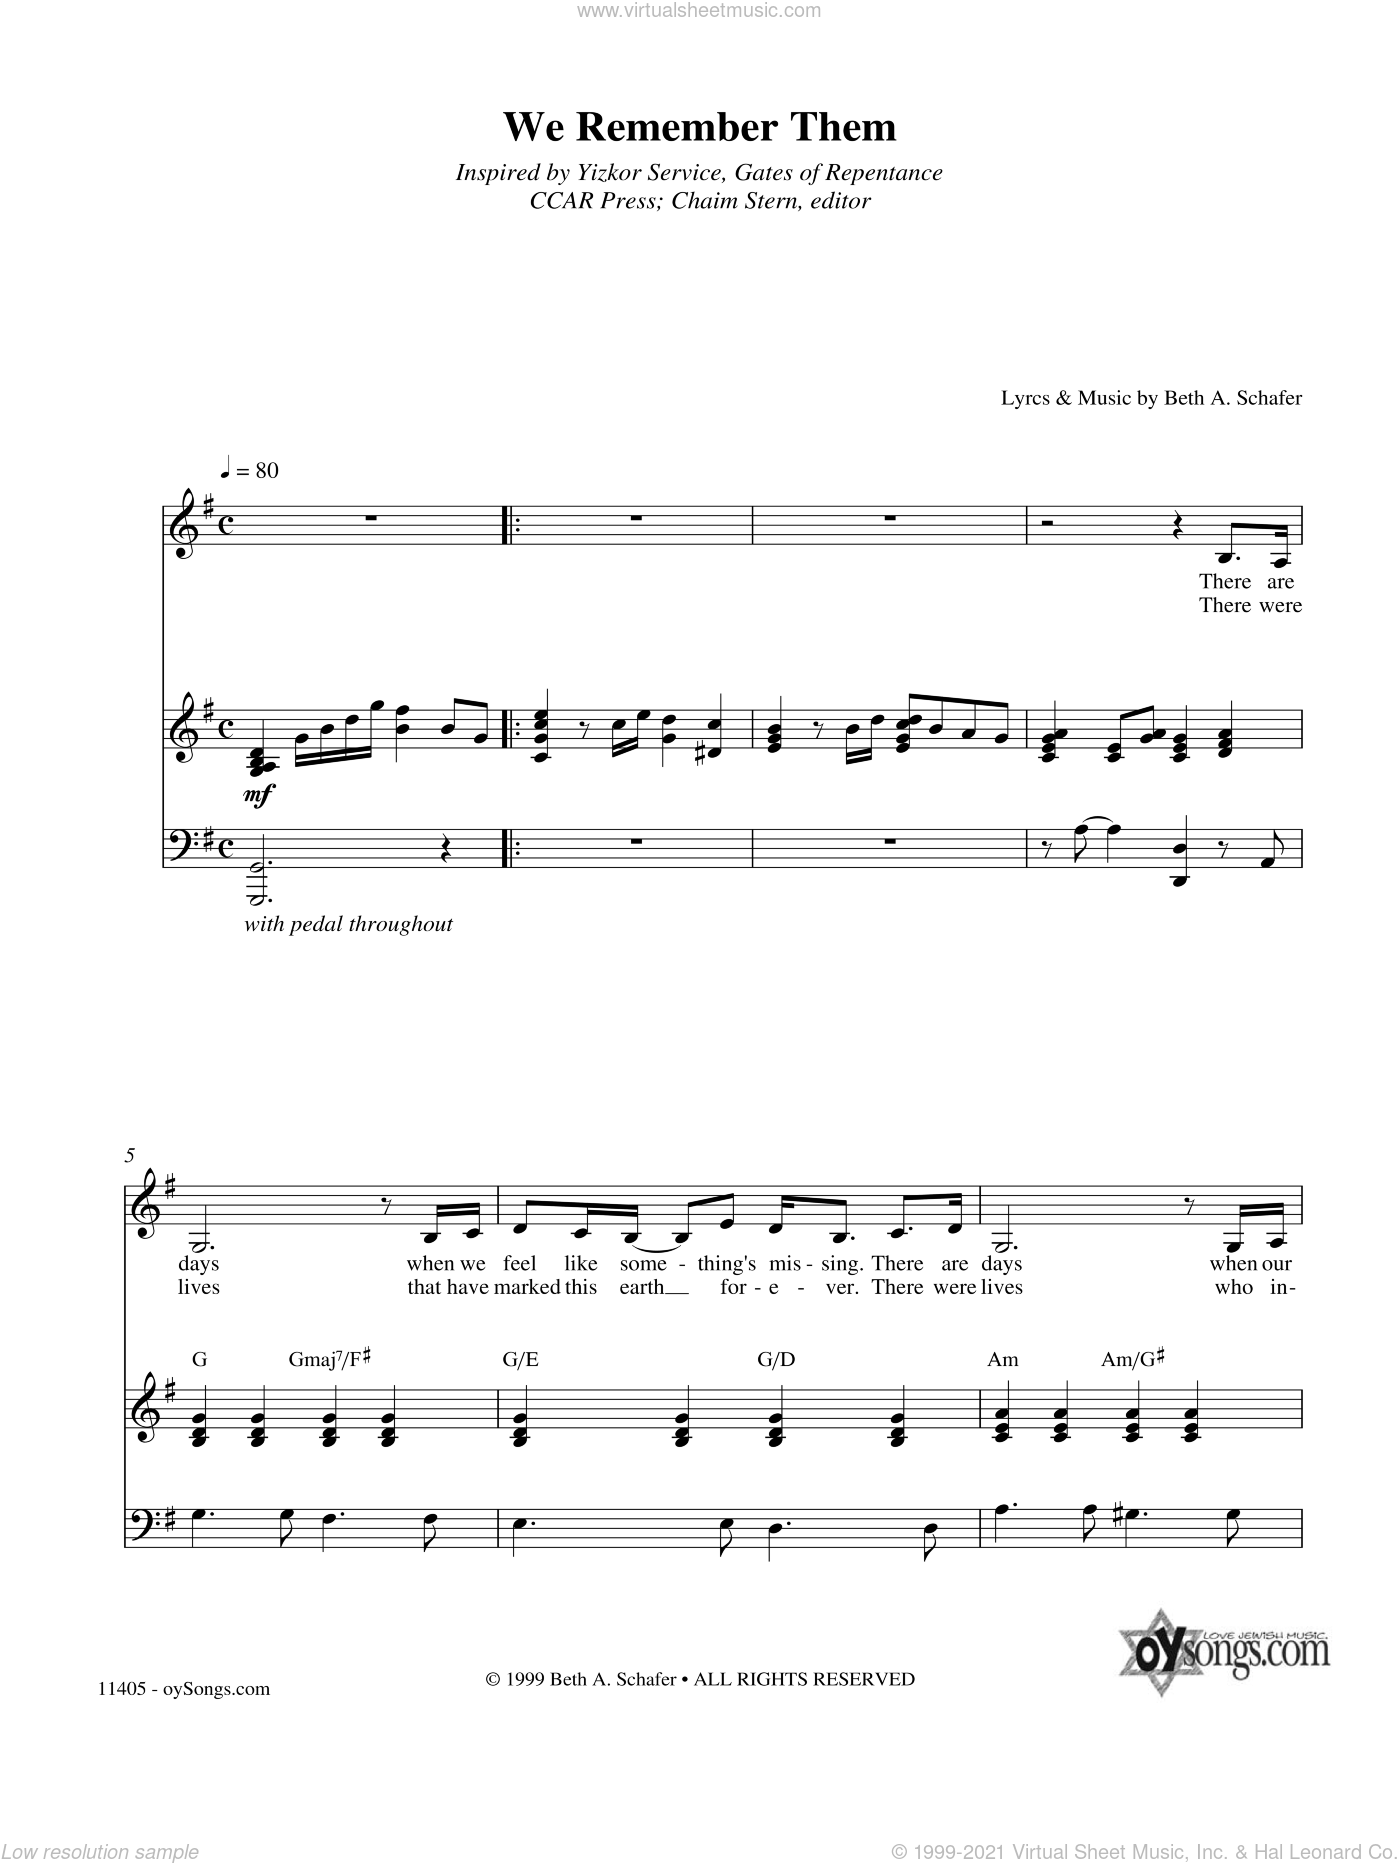 We Remember Them sheet music for voice, piano or guitar by Beth Schafer. Score Image Preview.